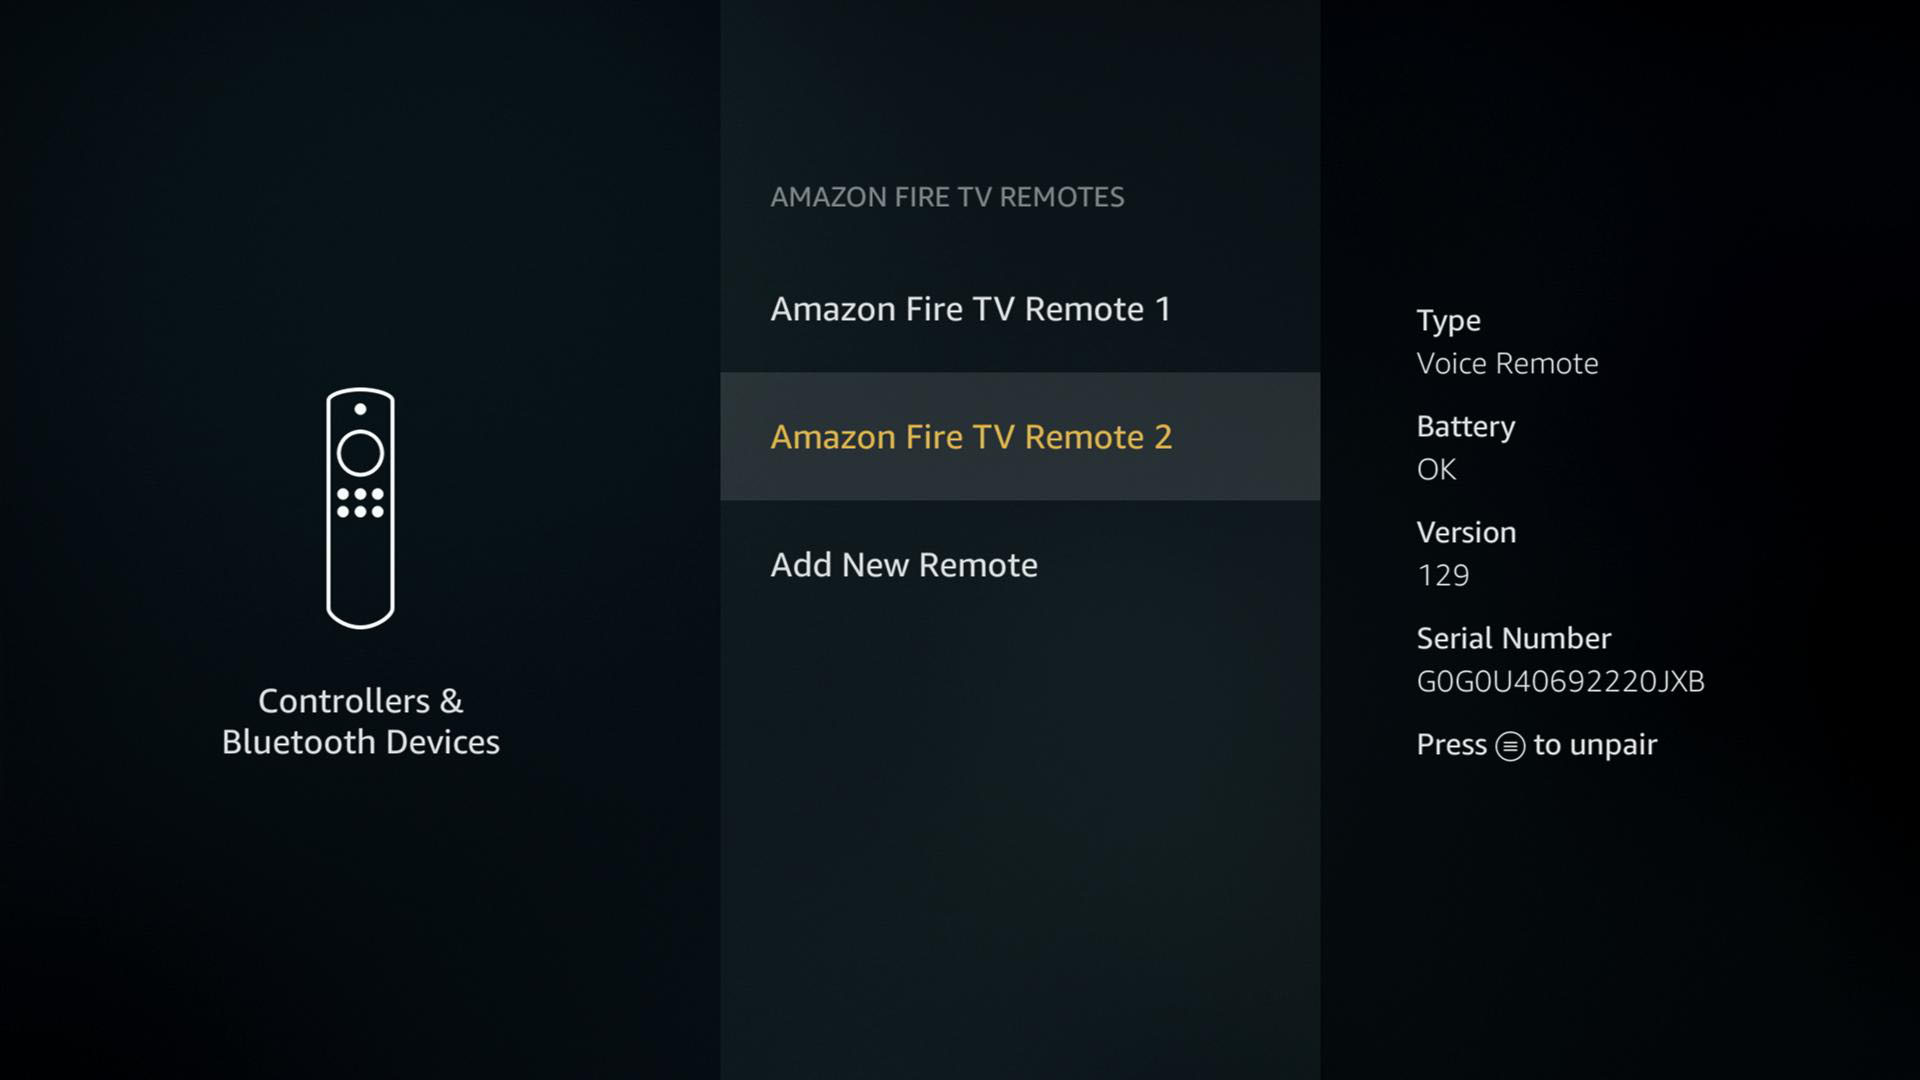 How to Pair a Replacement or Additional Remote to Fire TV